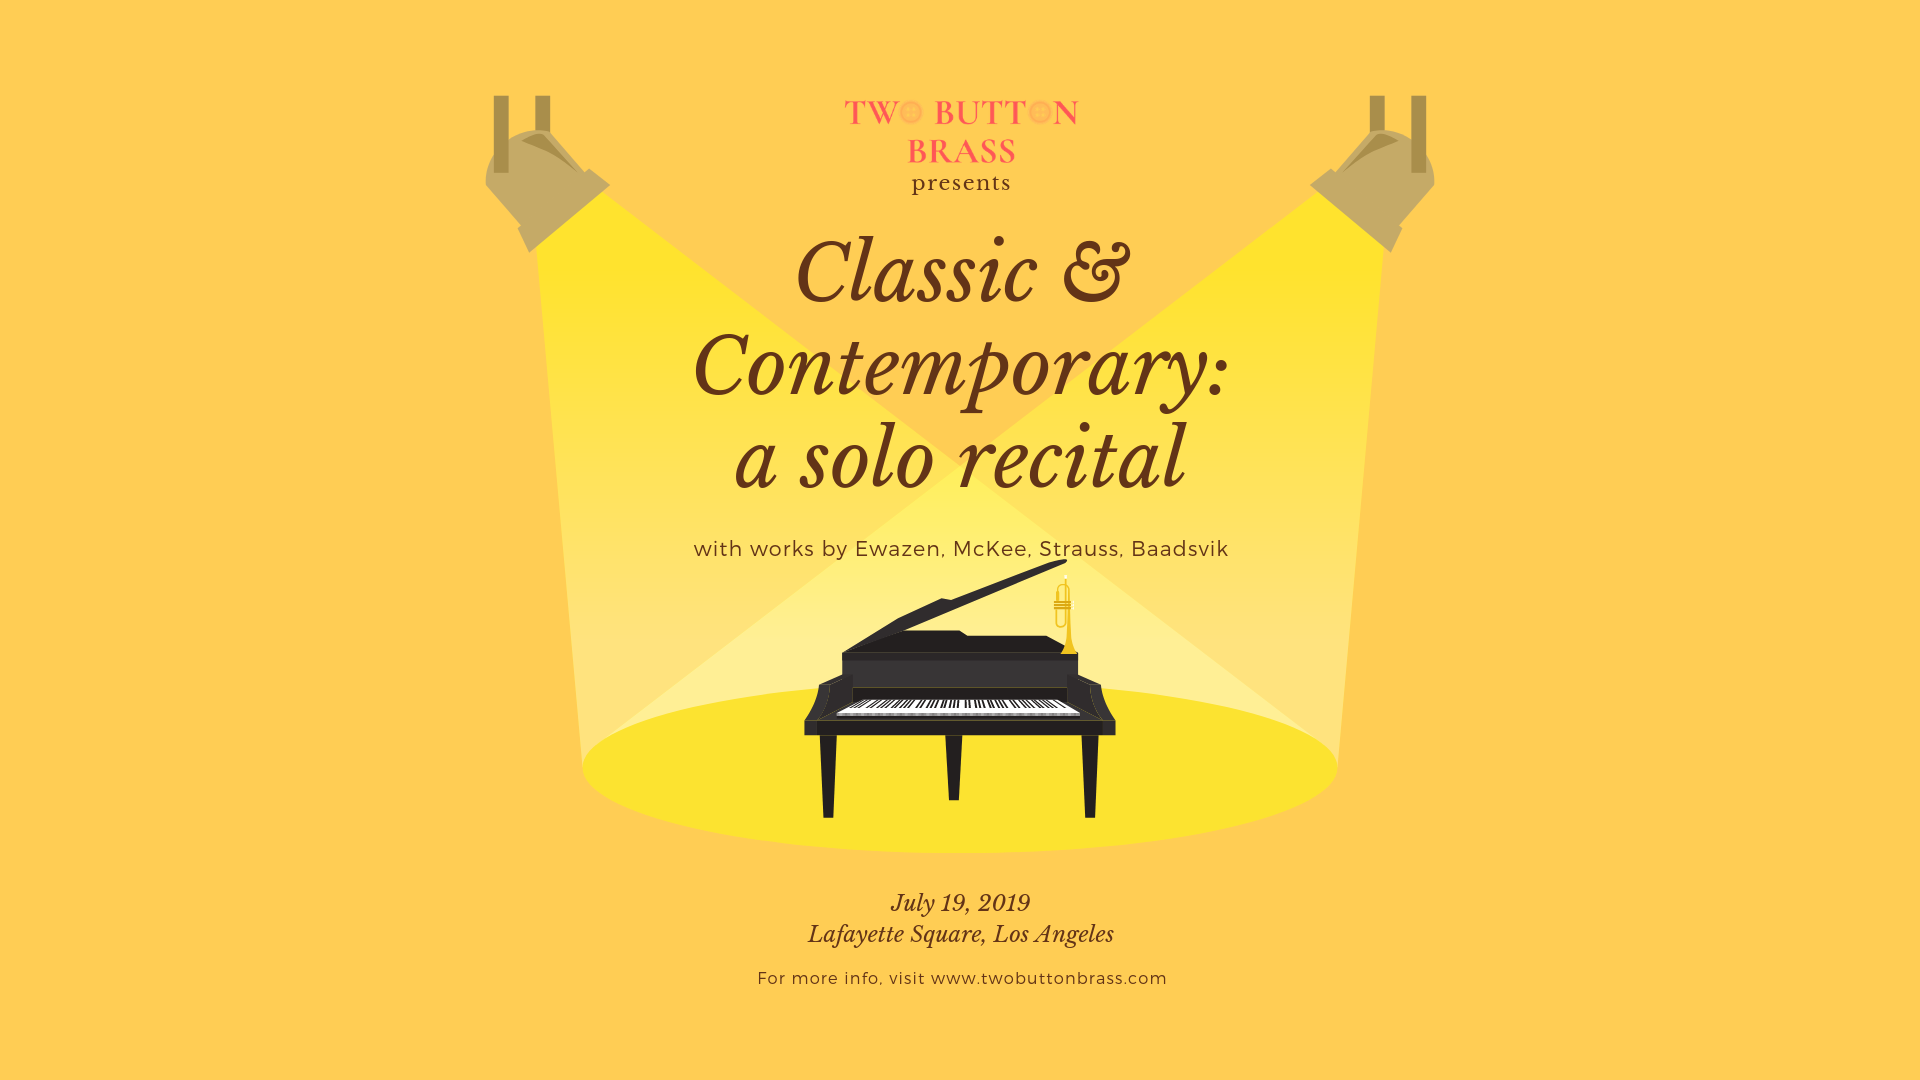 Classic & Contemporary:A Solo Recital - Friday, July 19, 2019